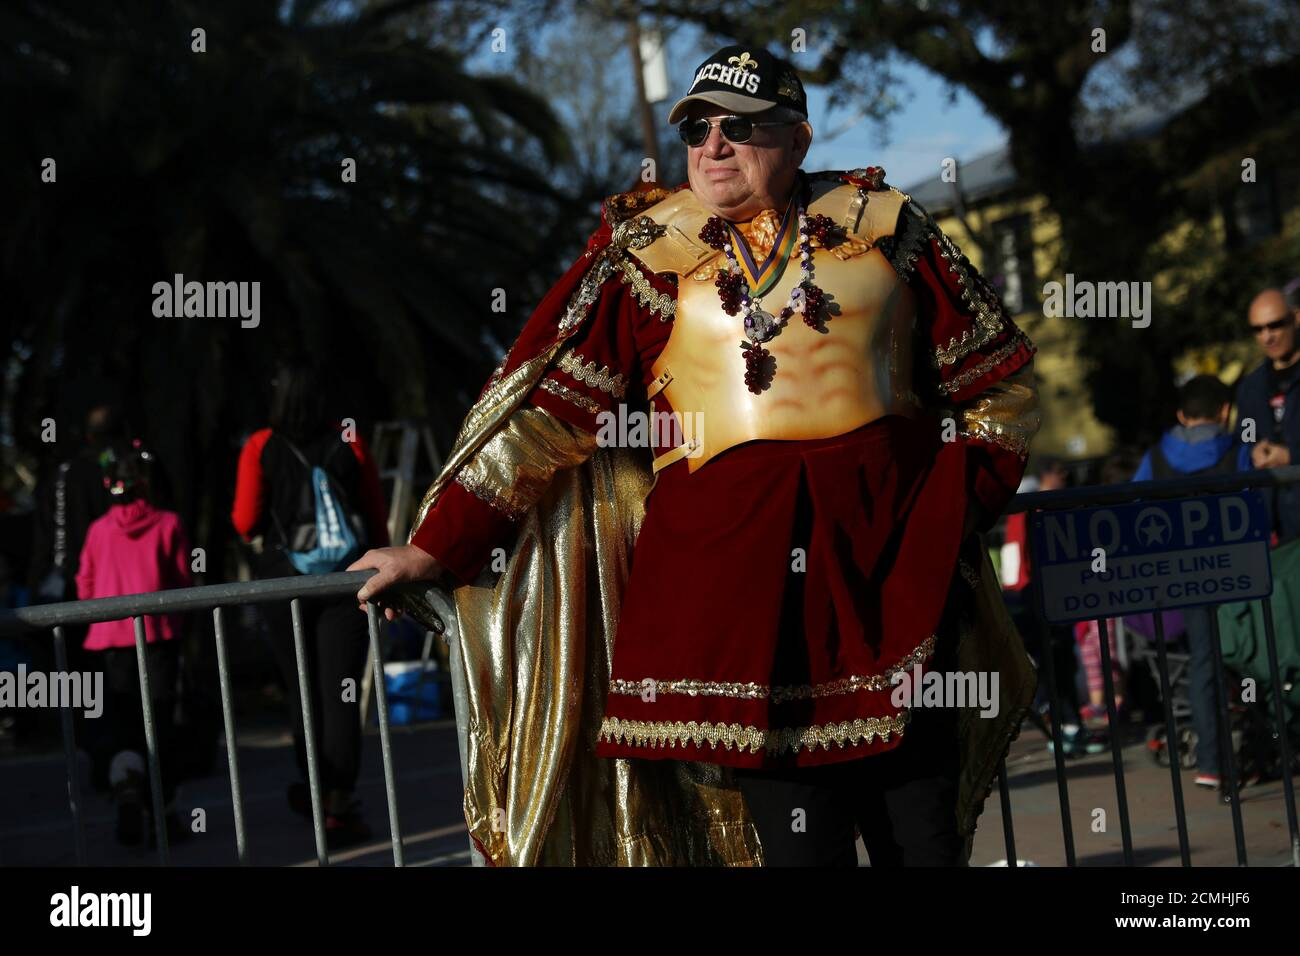 A man waits for the Bacchus parade to begin during Mardi Gras in New Orleans, Louisiana U.S., February 26, 2017. REUTERS/Shannon Stapleton Stock Photo